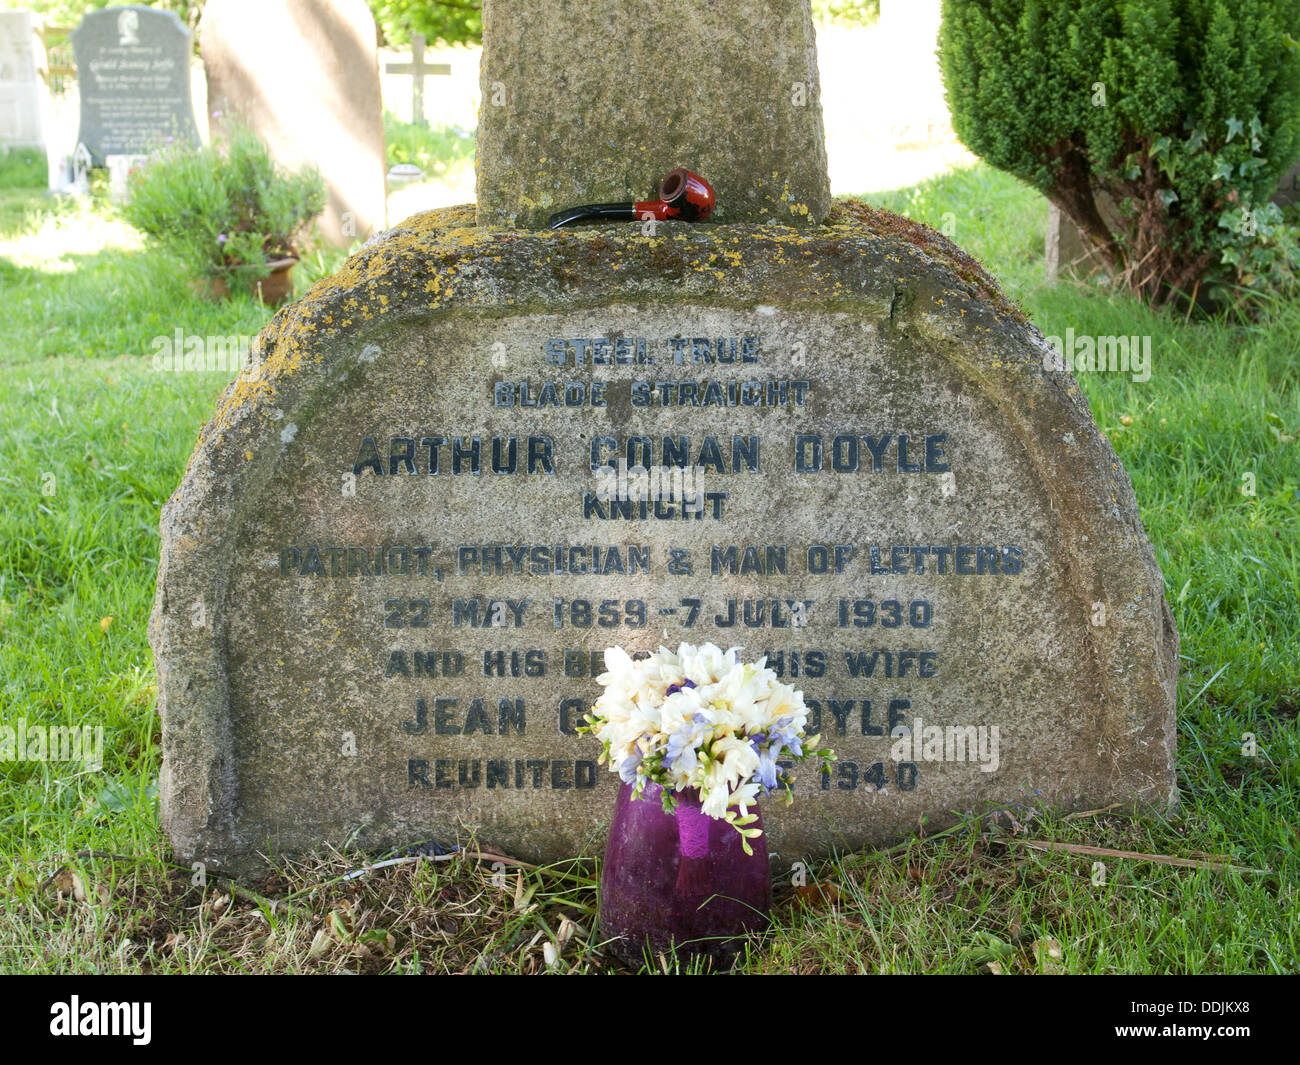 Grave of Sir Arthur Conan Doyle and his wife in the graveyard of Church of All Saints Minstead Hampshire England UK - Stock Image